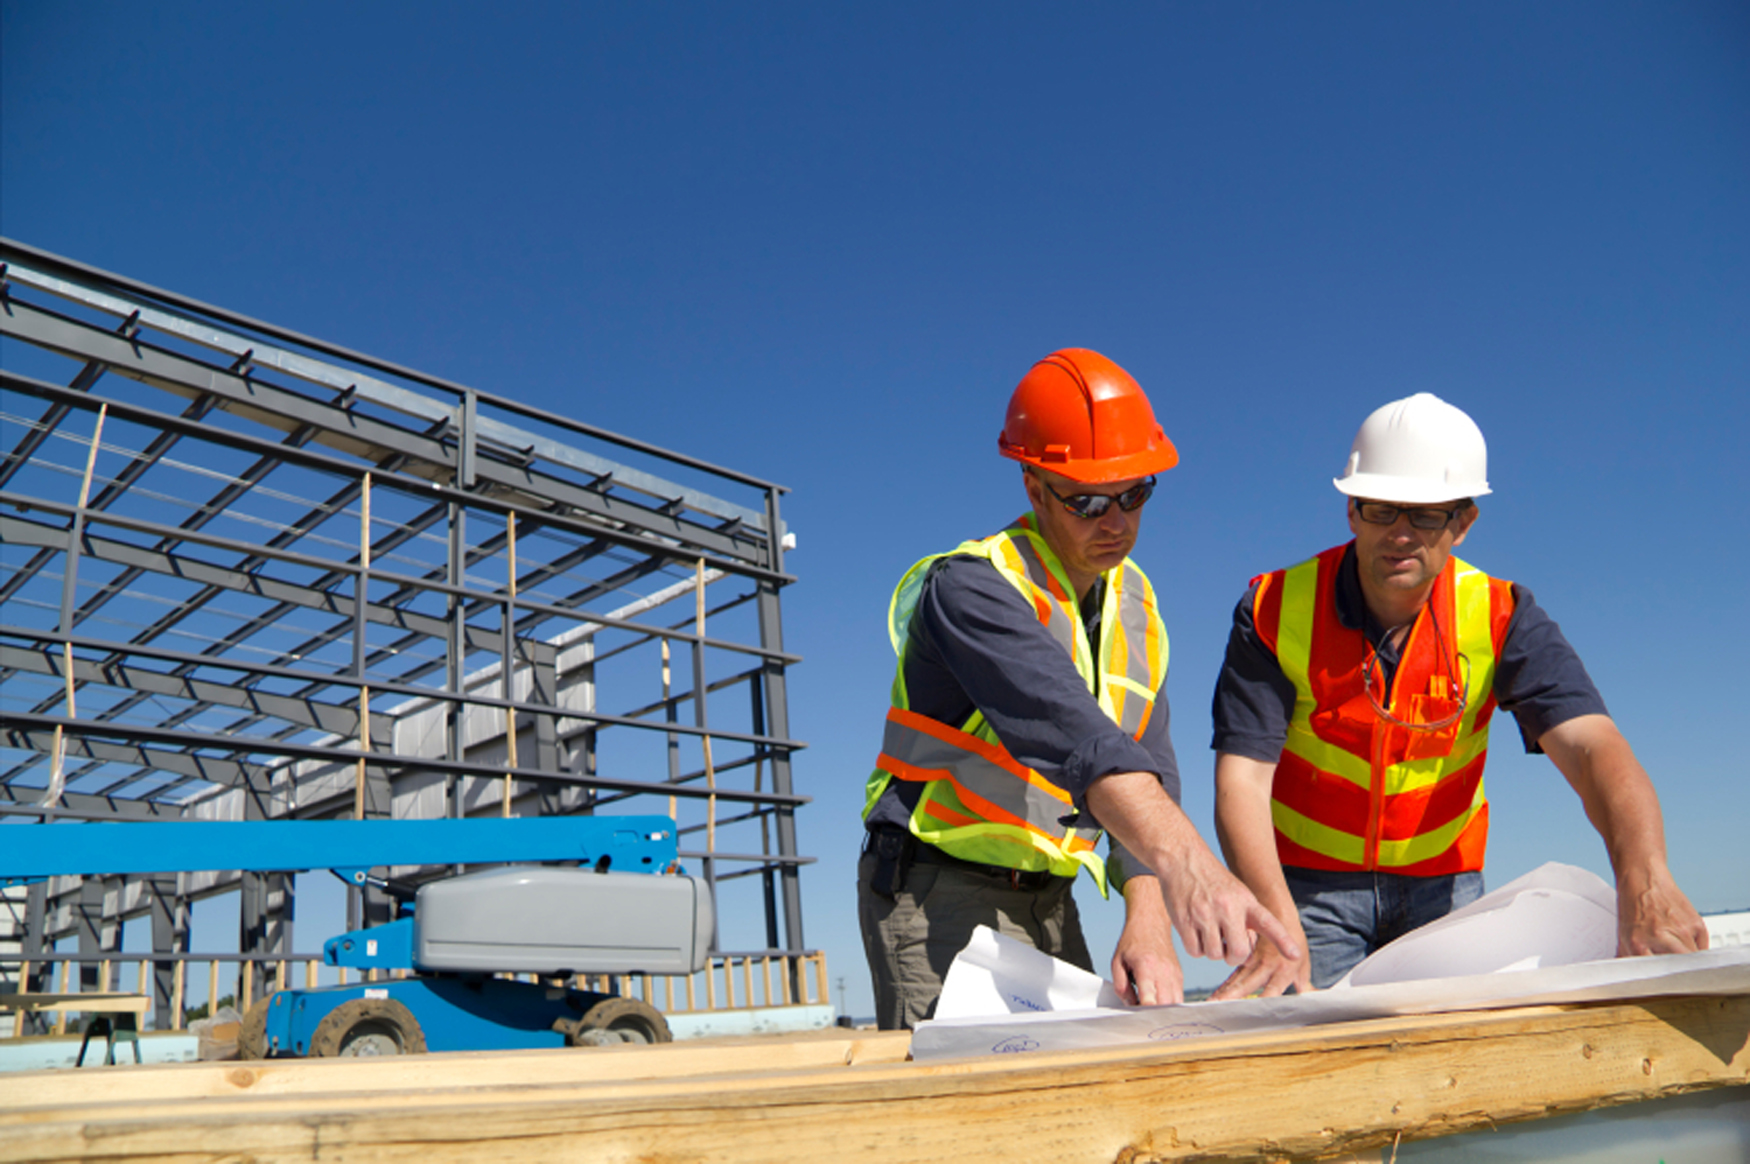 EM 385-1-1 – CONSTRUCTION SAFETY HAZARD AWARENESS FOR CONTRACTORS